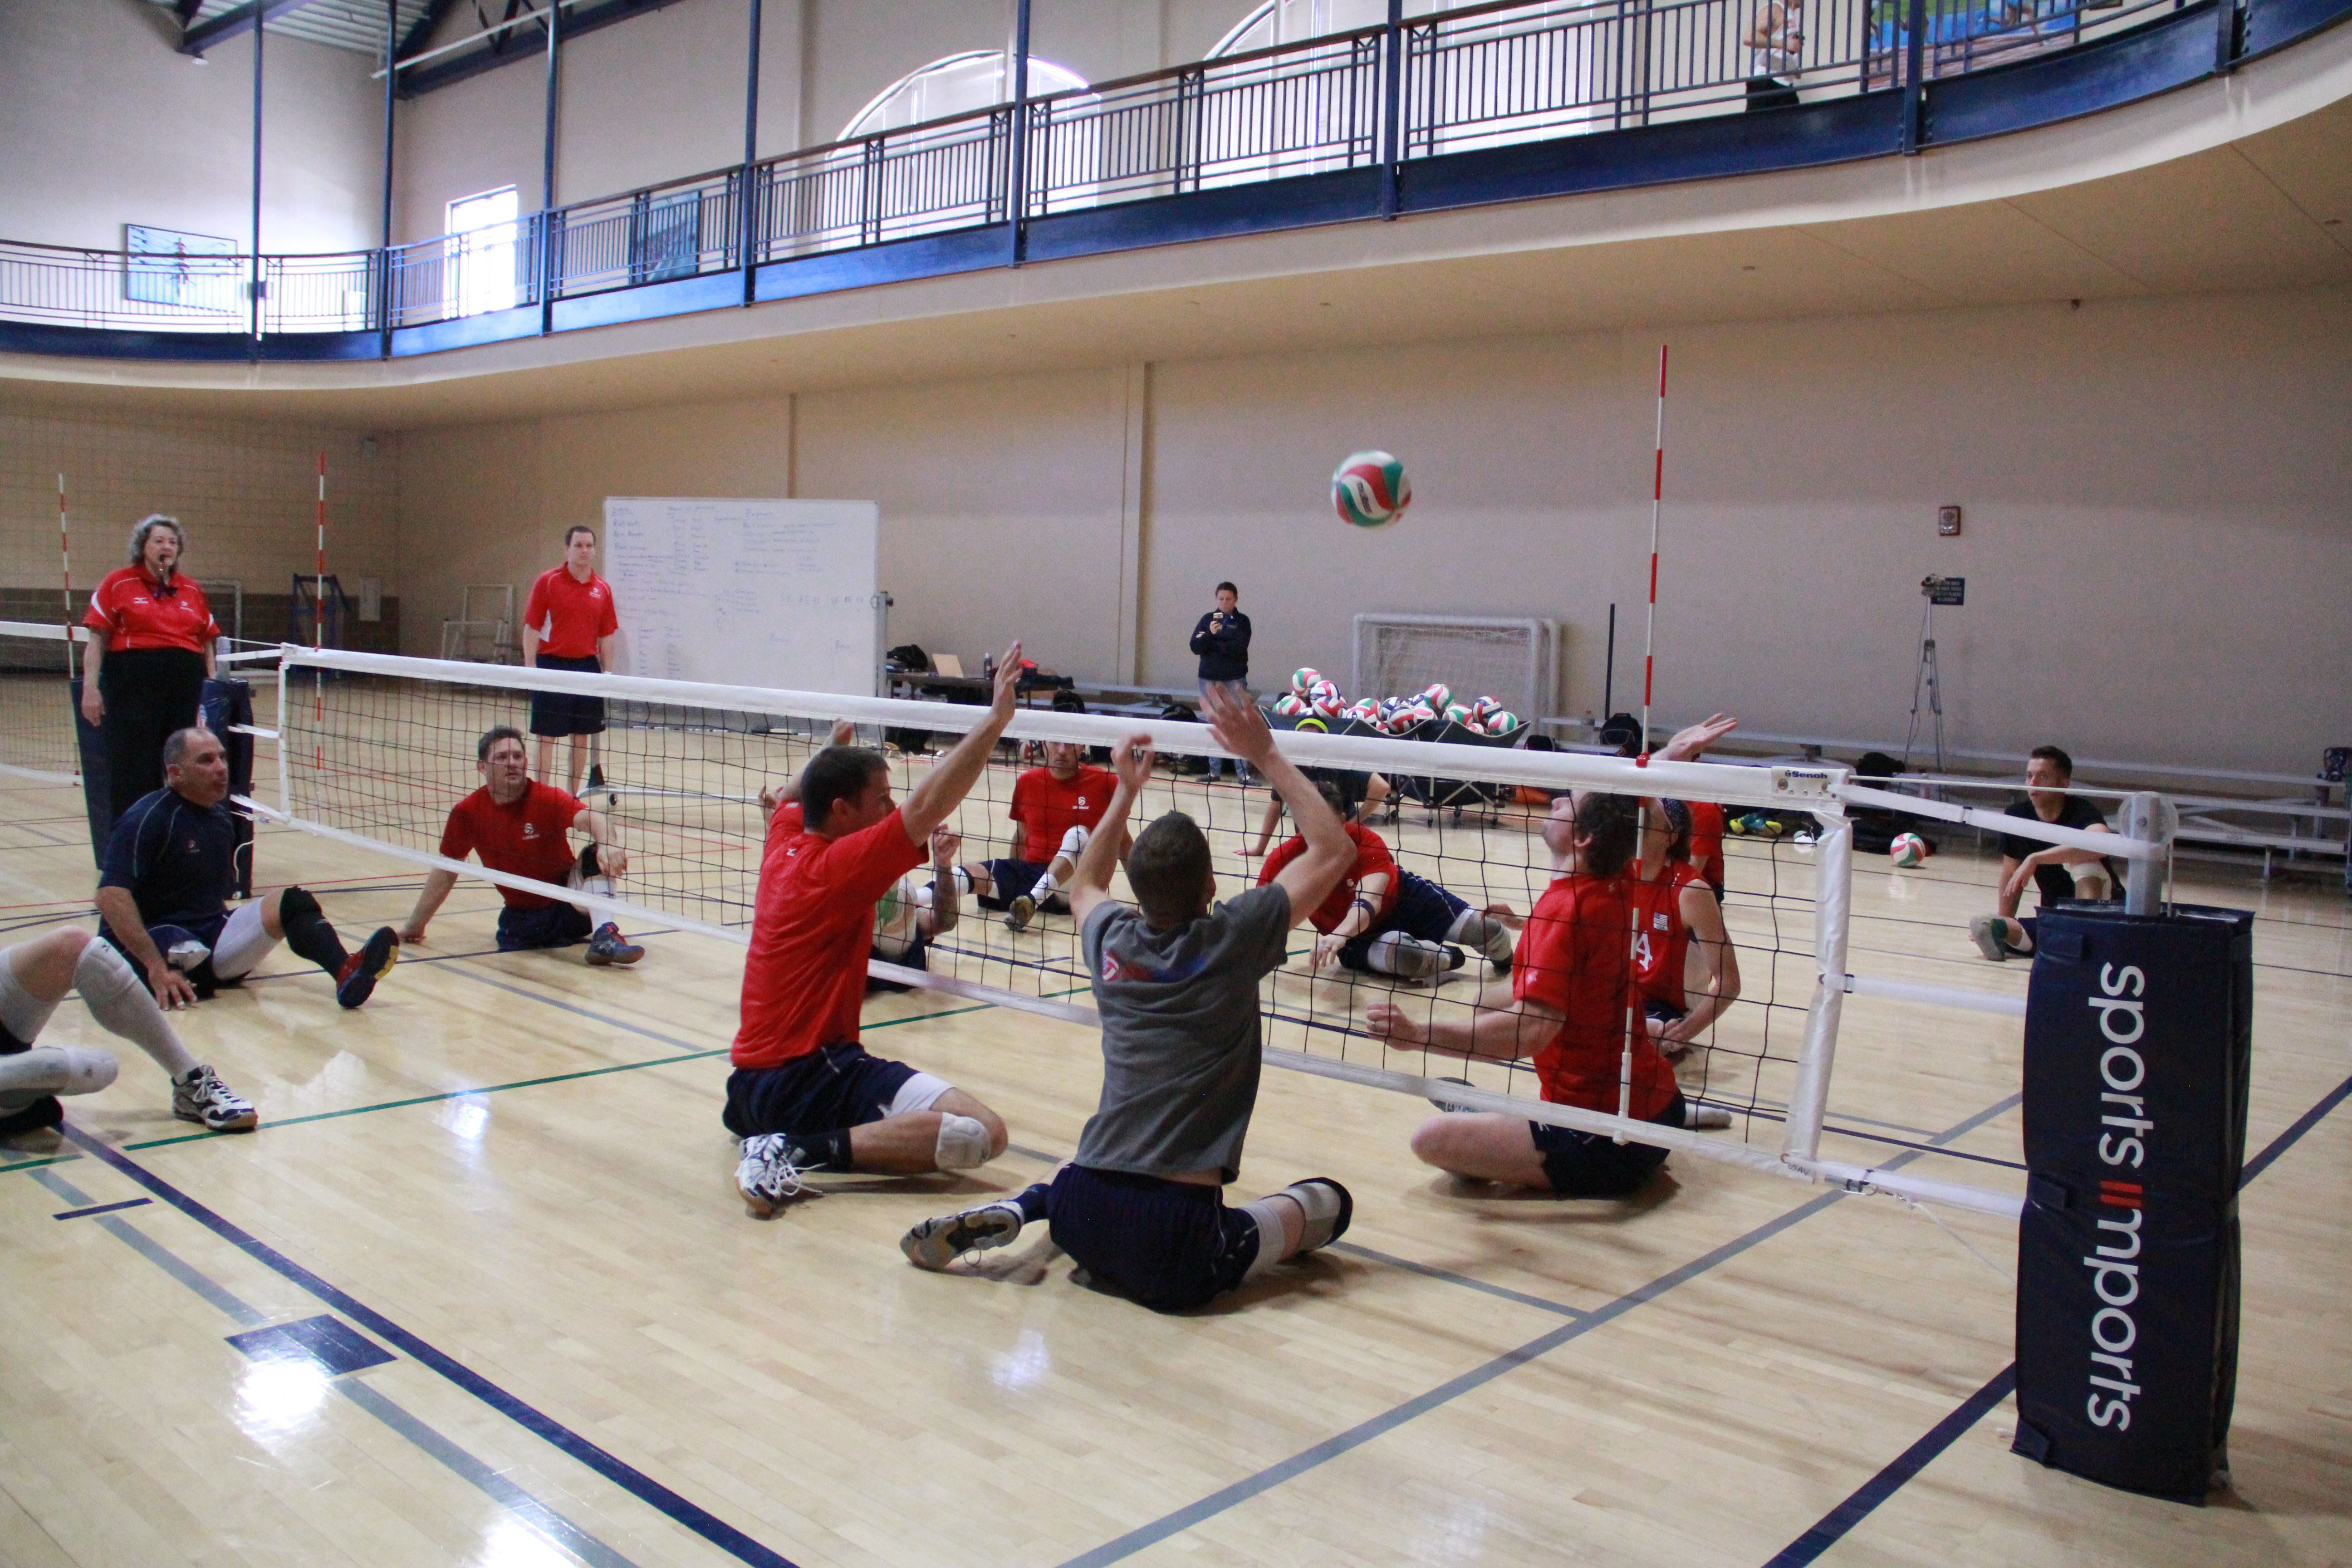 U S A Men S Sitting Volleyball Practice Sports Imports Volleyball Equipment Volleyball Equipment Volleyball Practice Volleyball